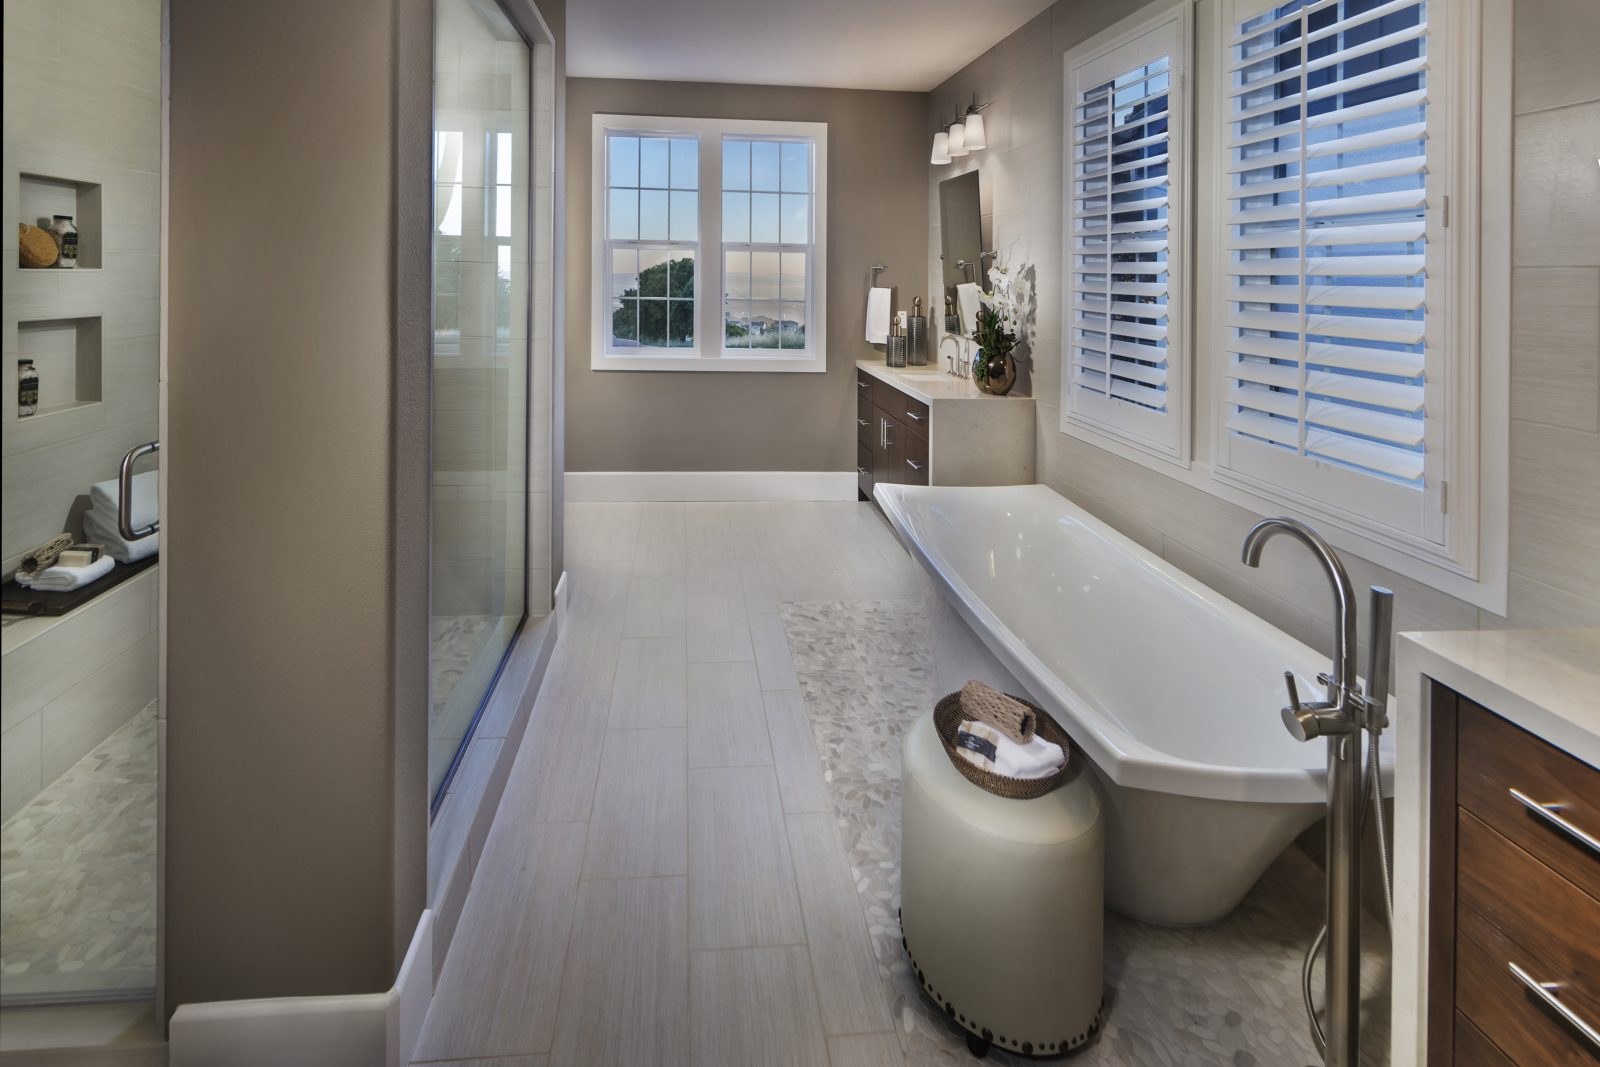 Owner bathroom in new luxury home | Crown Point at Stonebrae in Hayward, CA | Brookfield Residential